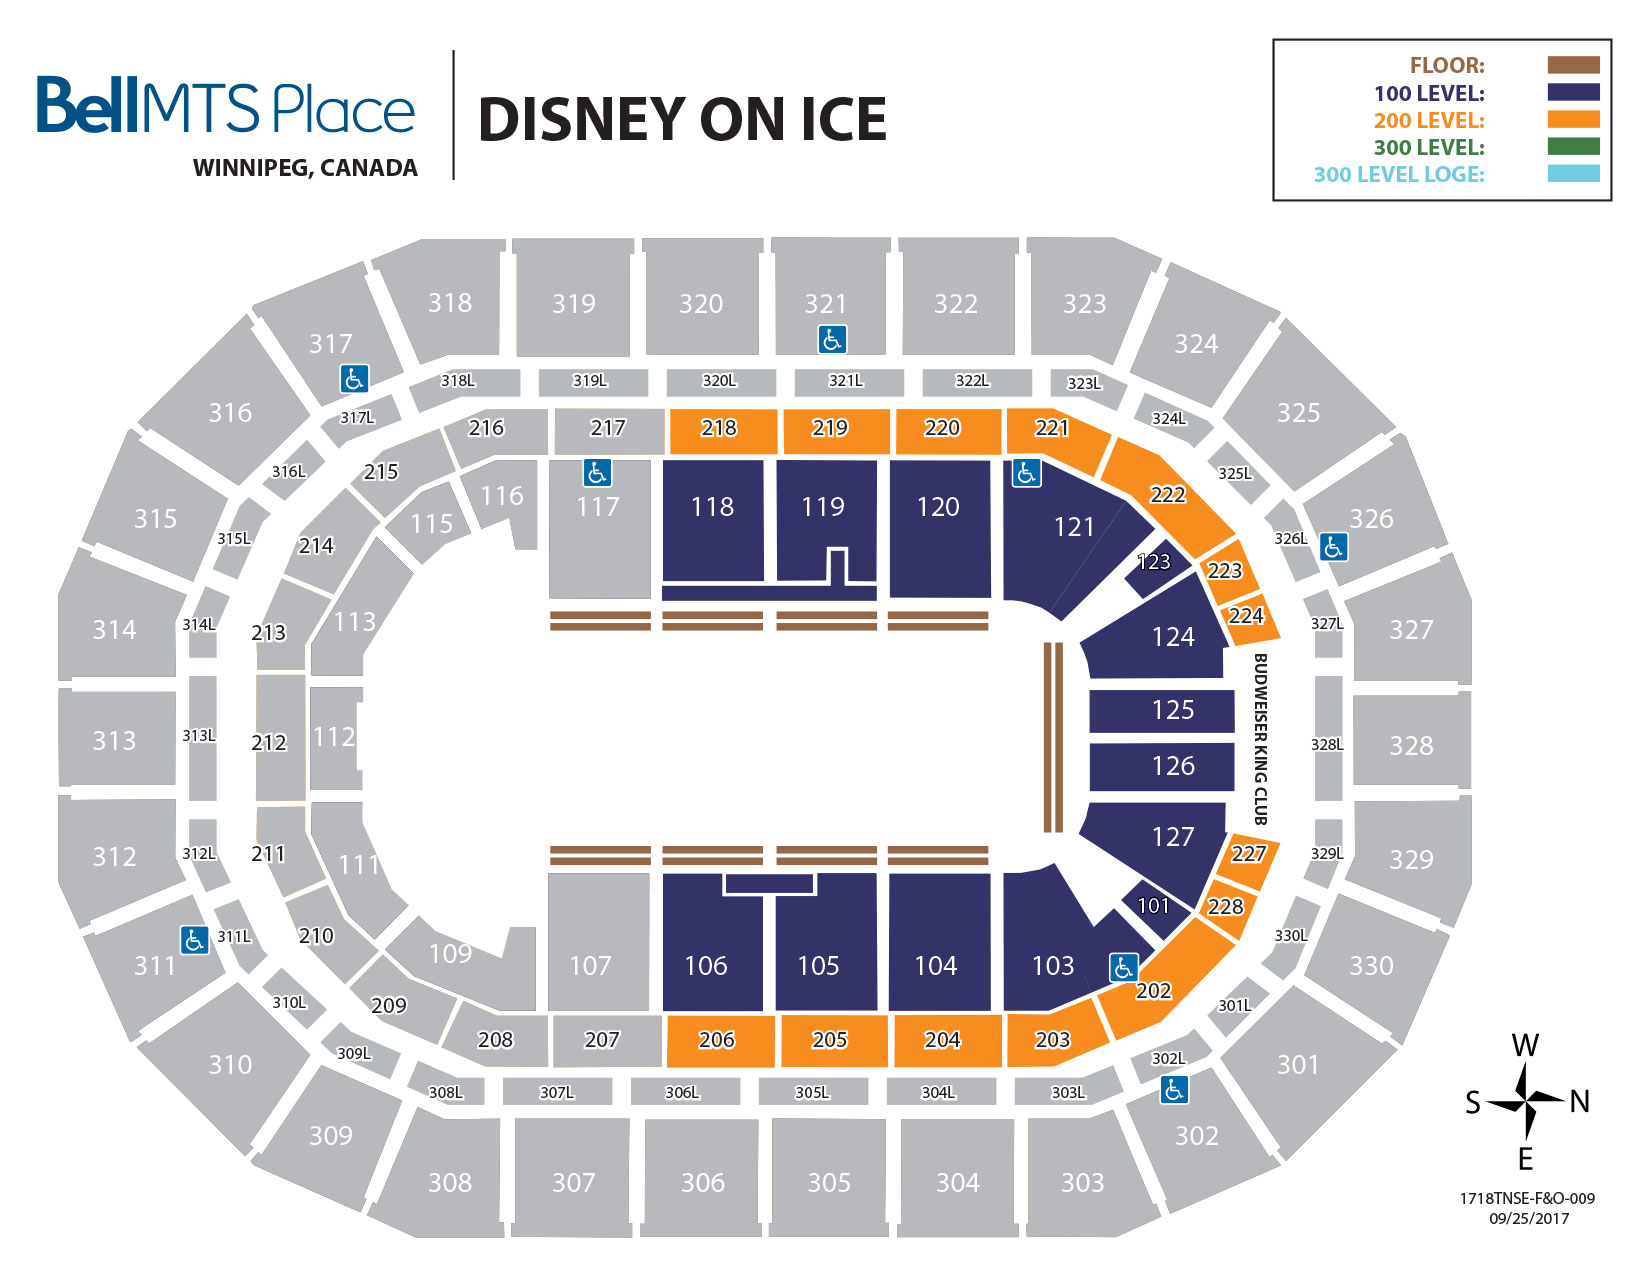 Bell MTS Place - Disney on Ice